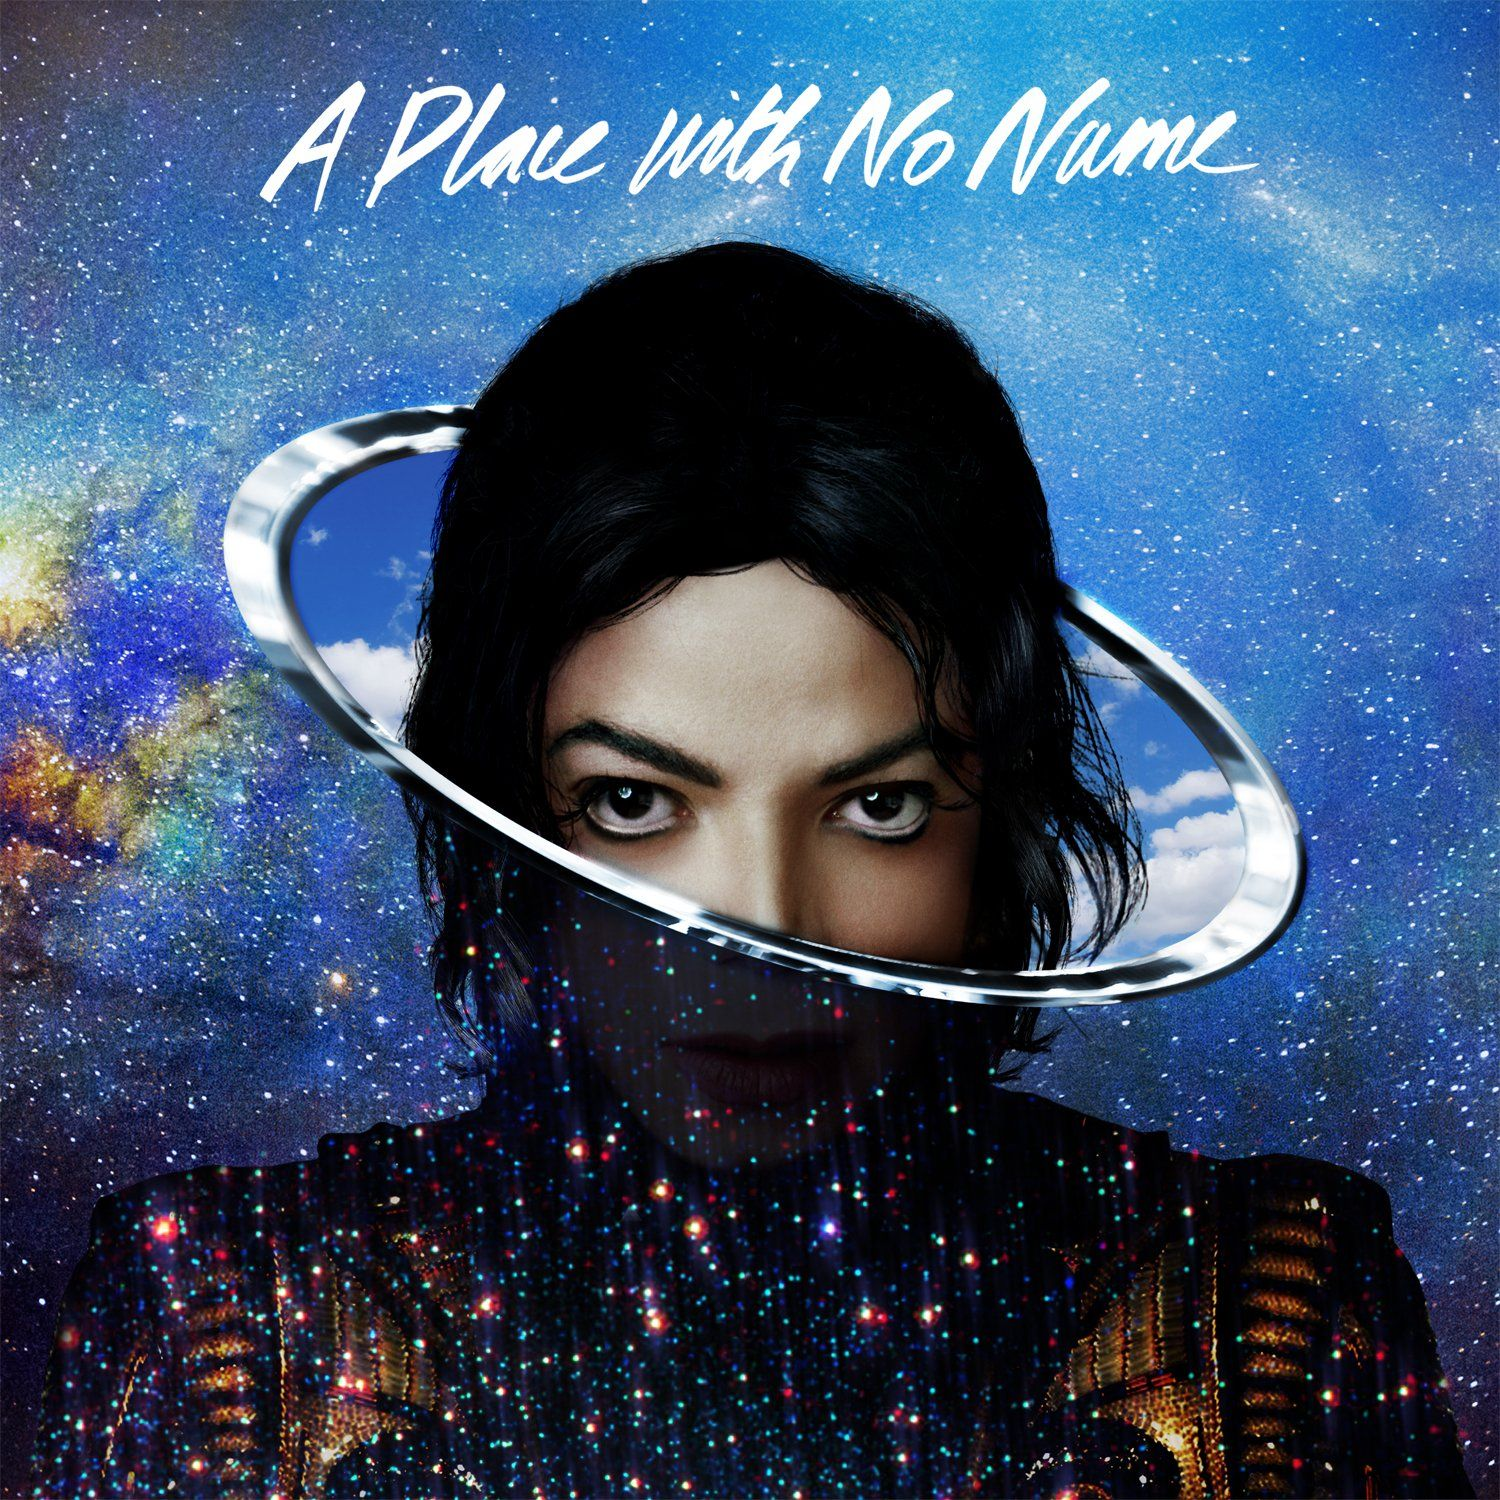 Amazon.co.jp: Michael Jackson マイケルジャクソン : Place With No Name (2tracks) Single, Import - 音楽